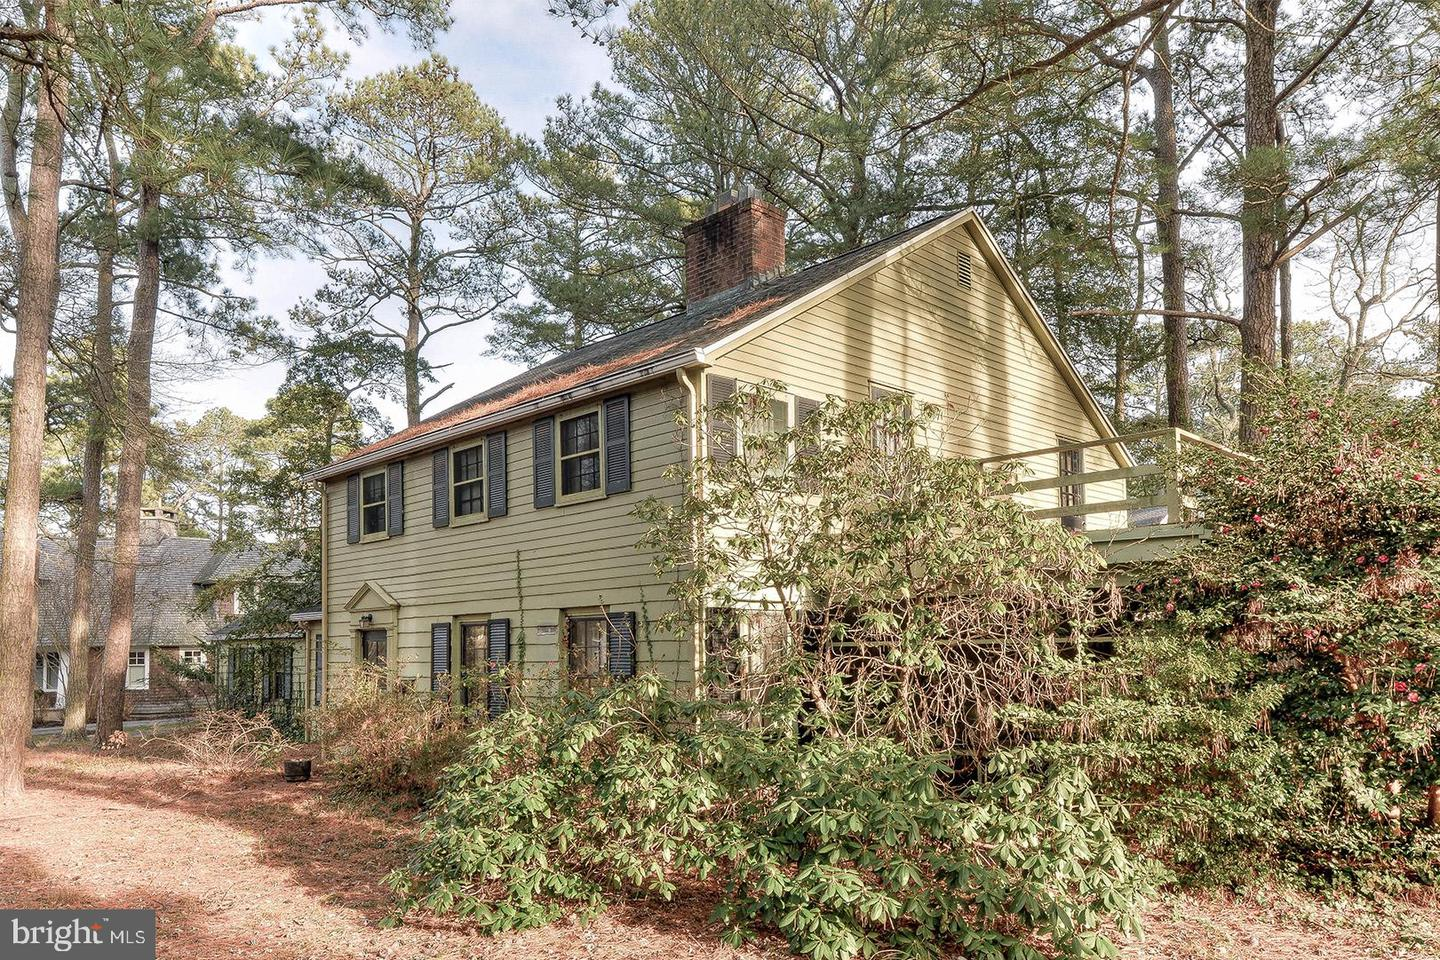 DESU153236-302193814248-2019-12-31-13-34-21 Sold Listings - Rehoboth Beach Real Estate - Bryce Lingo and Shaun Tull REALTORS, Rehoboth Beach, Delaware